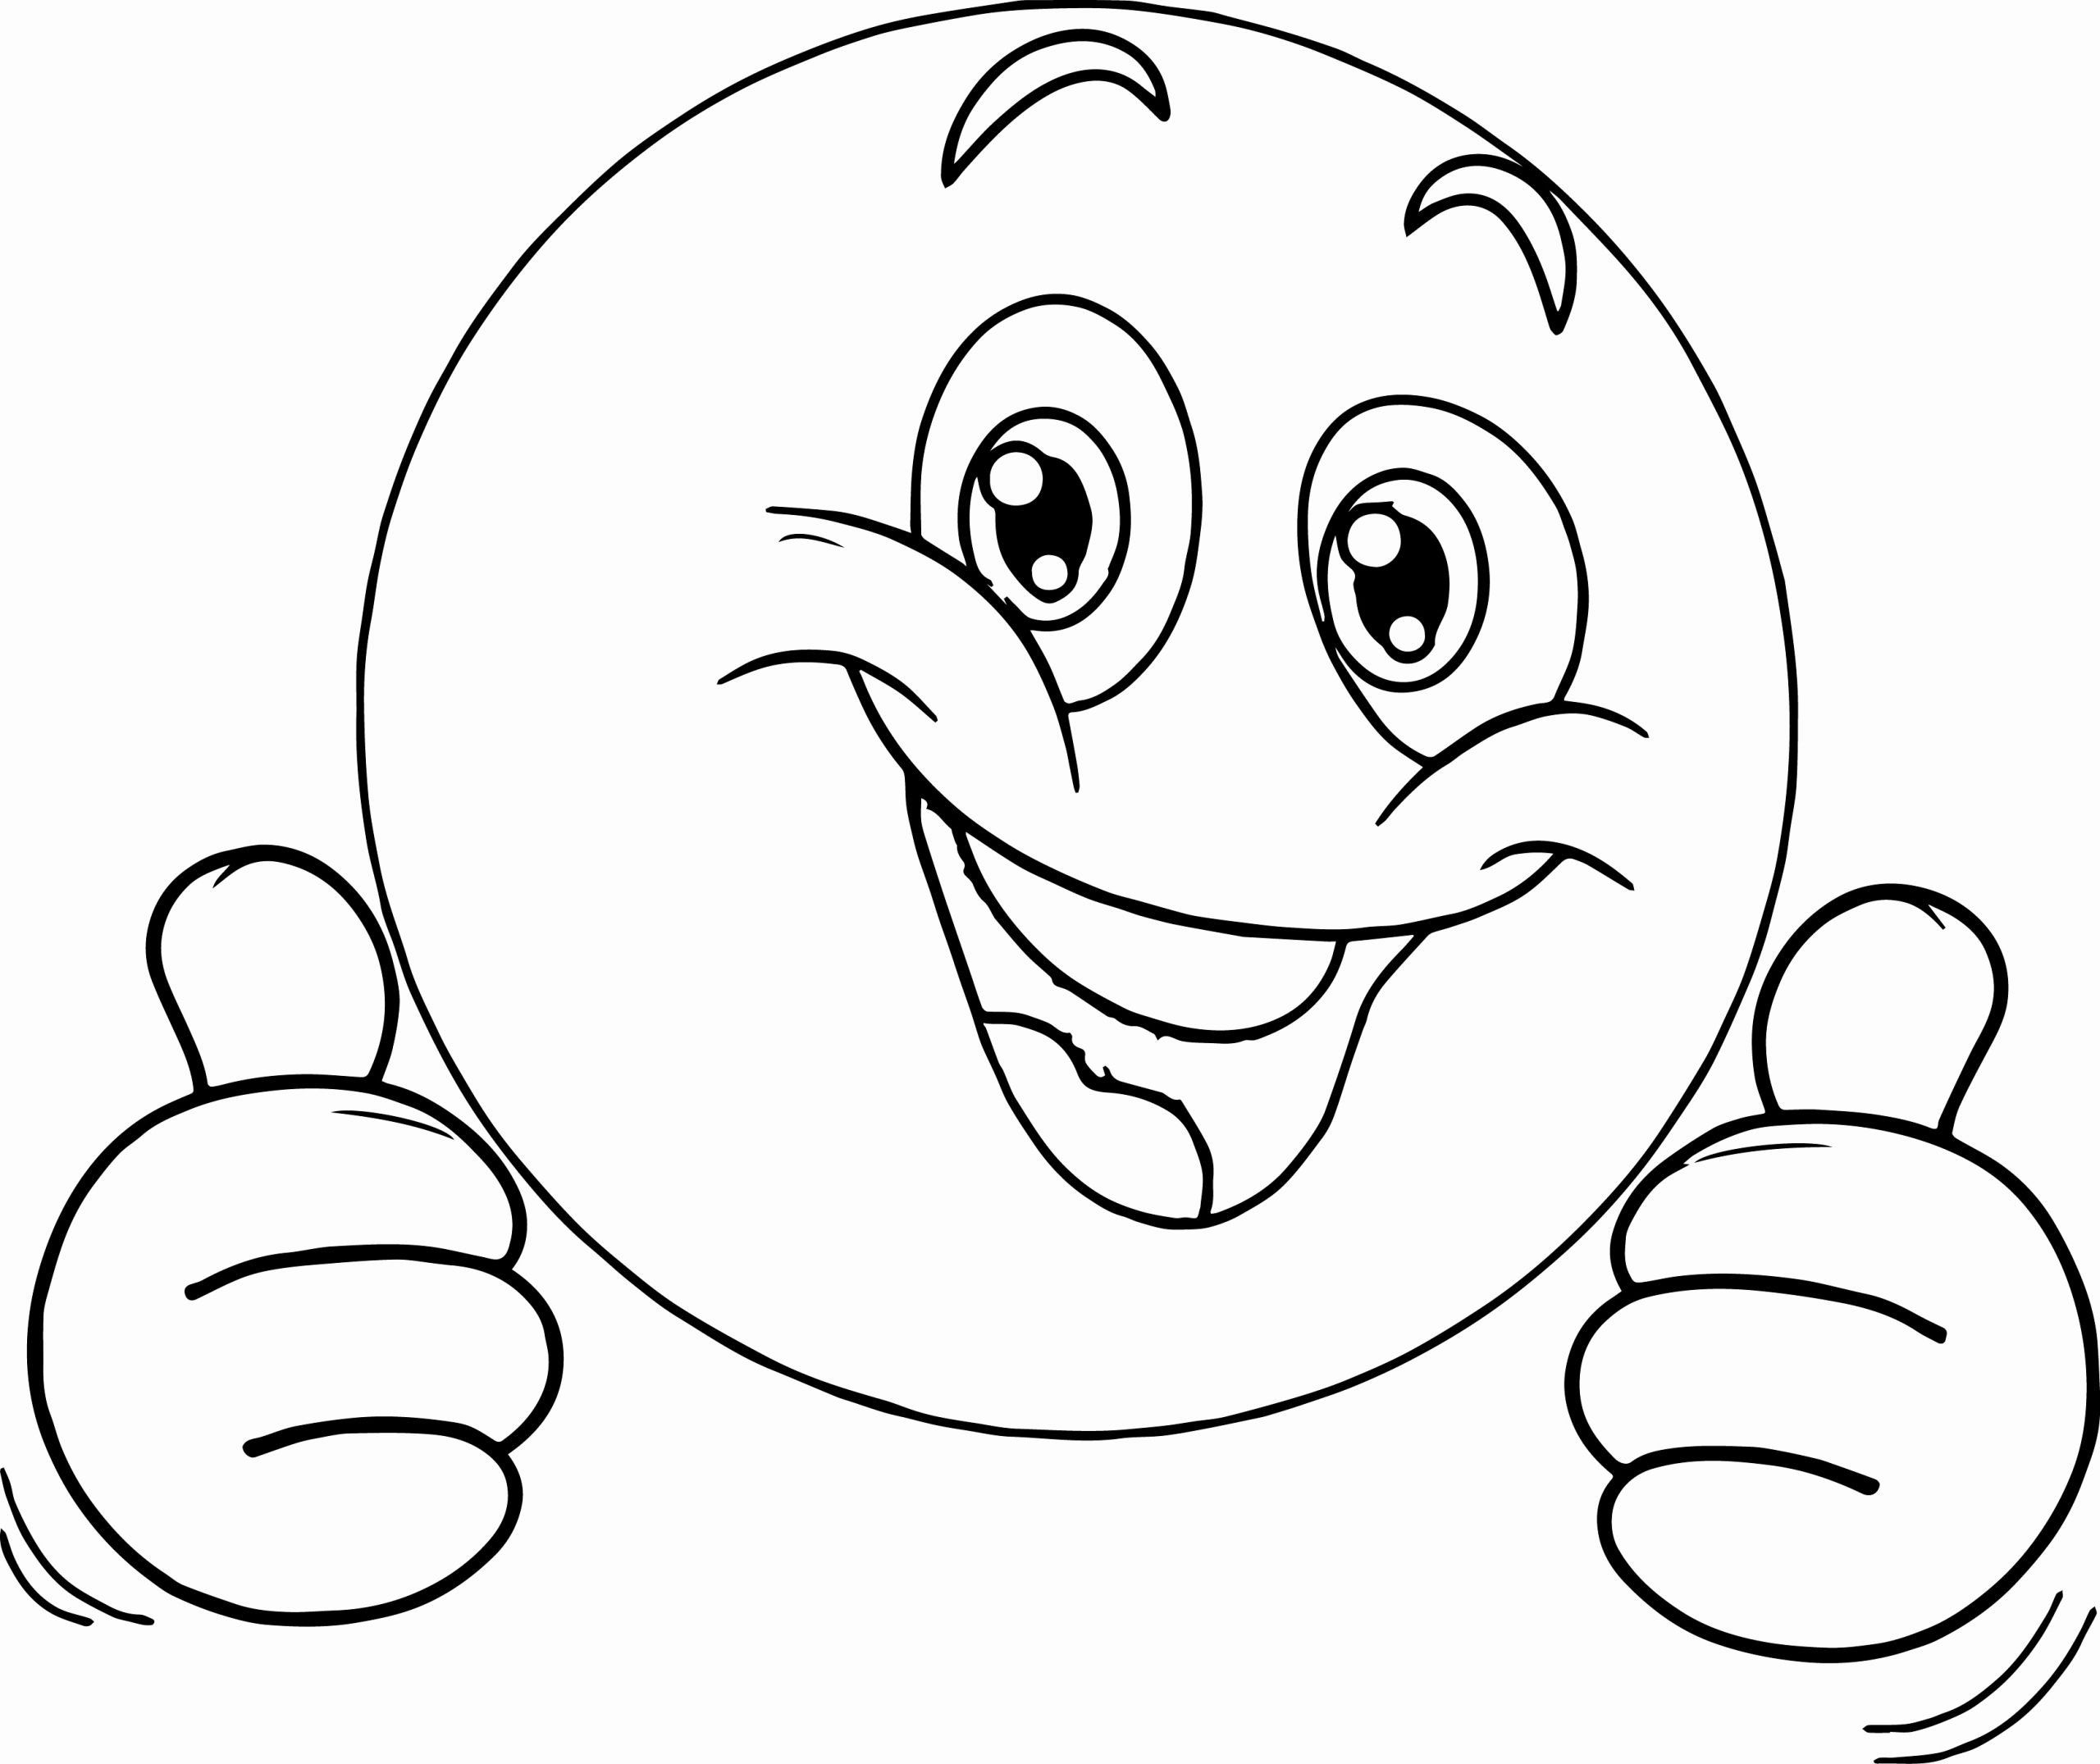 21 Smiley Face Coloring Page In 2020